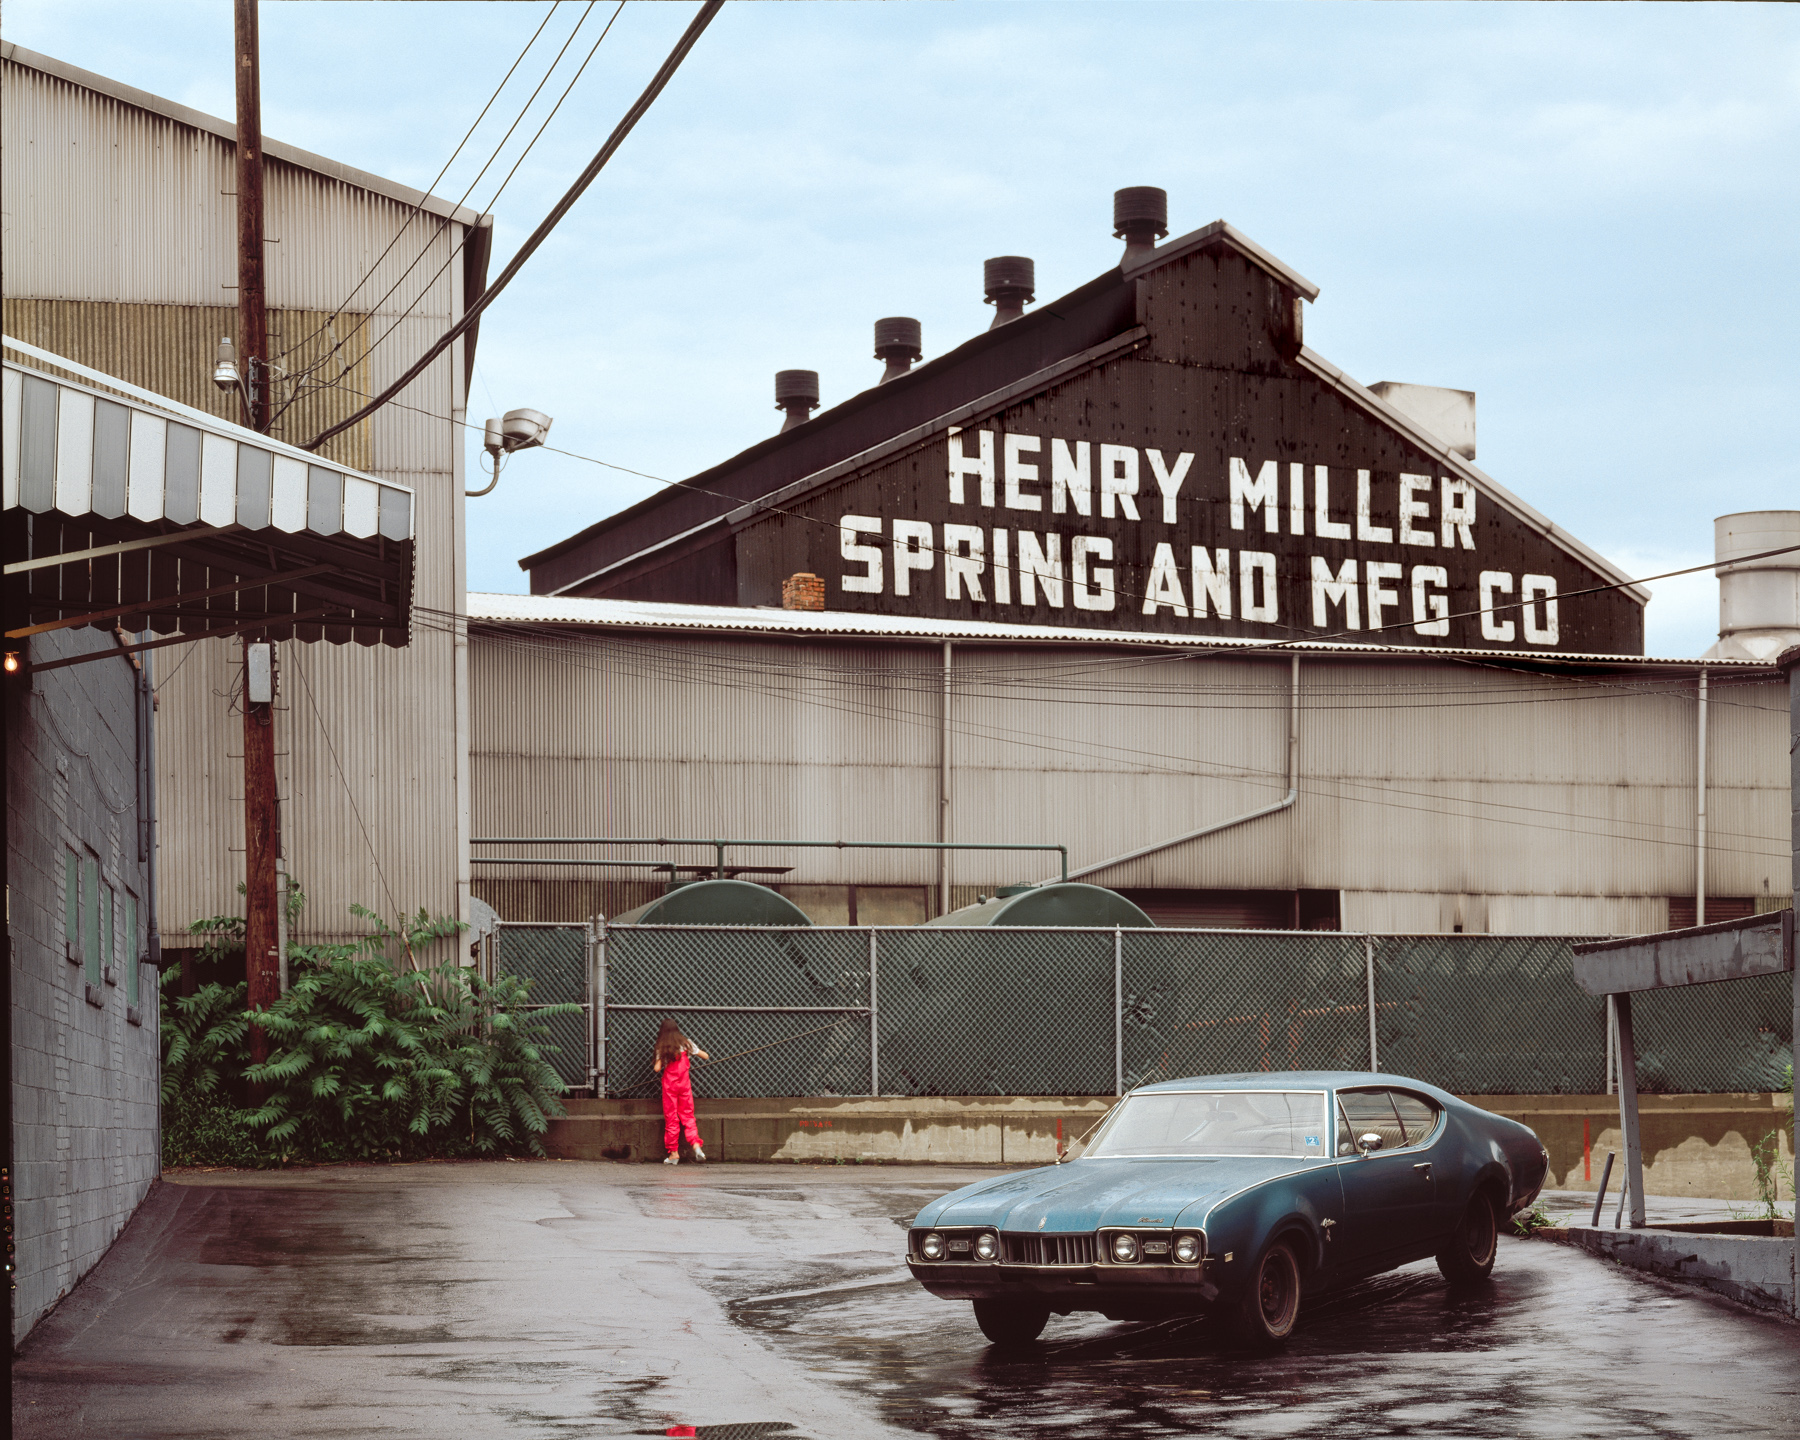 Young girl in search of Henry Miller, Sharpsburg, Pennsylvania, 1976